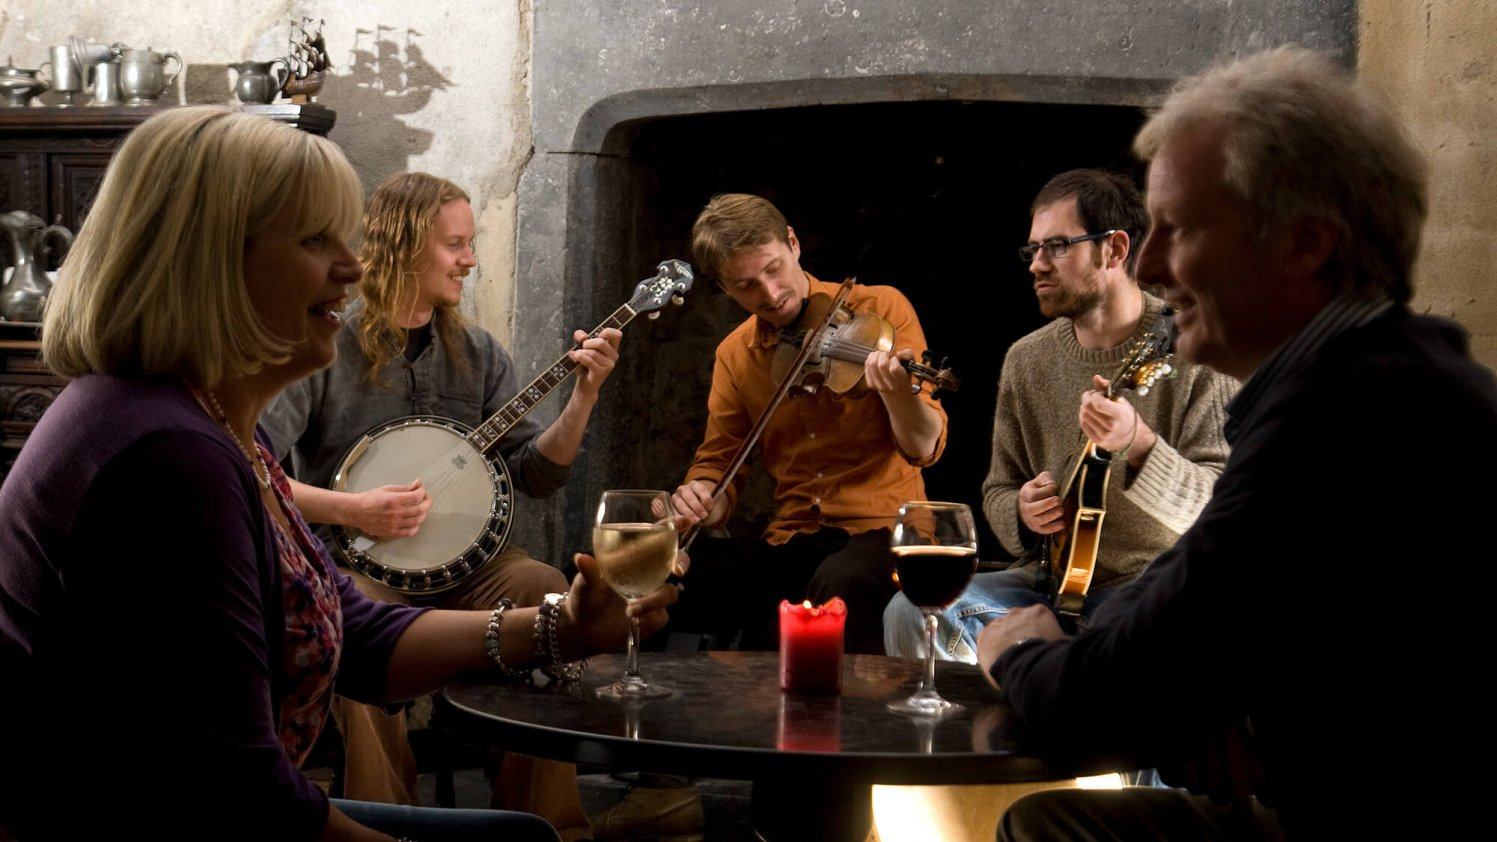 A couple enjoy three Irish traditional musicians in a bar